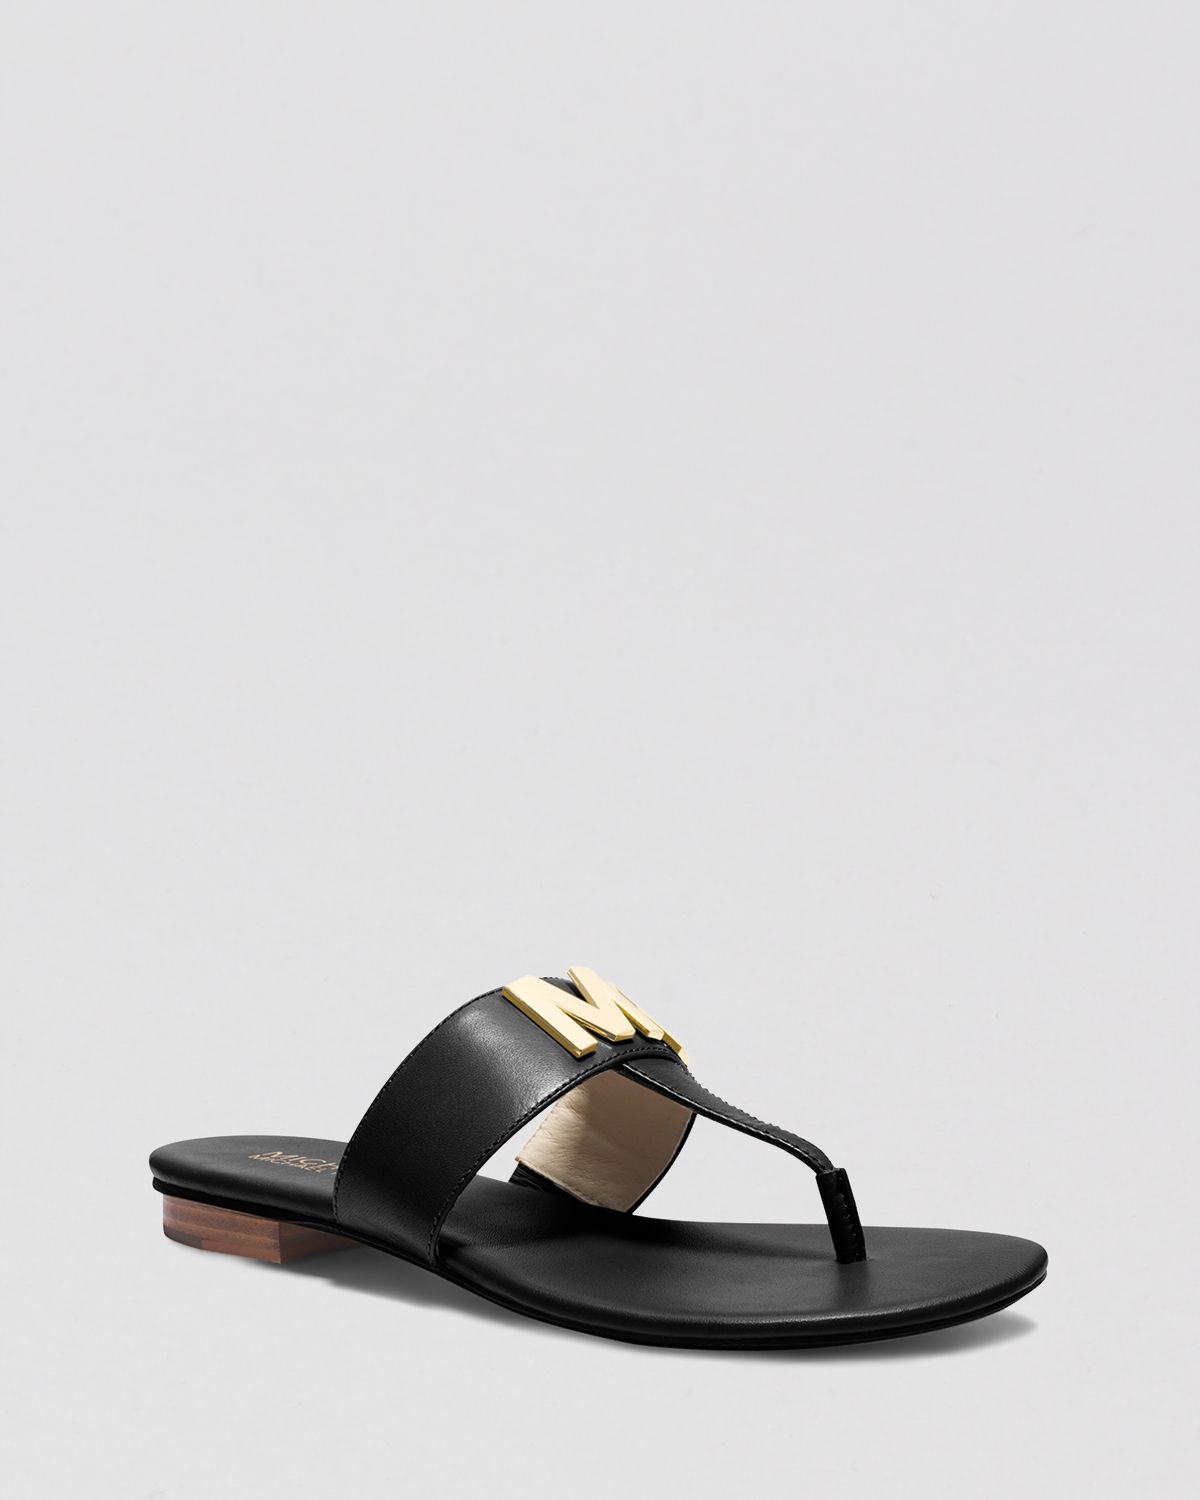 31b85685a544 Lyst - MICHAEL Michael Kors Flat Thong Sandals - Hayley Mk Logo in Black